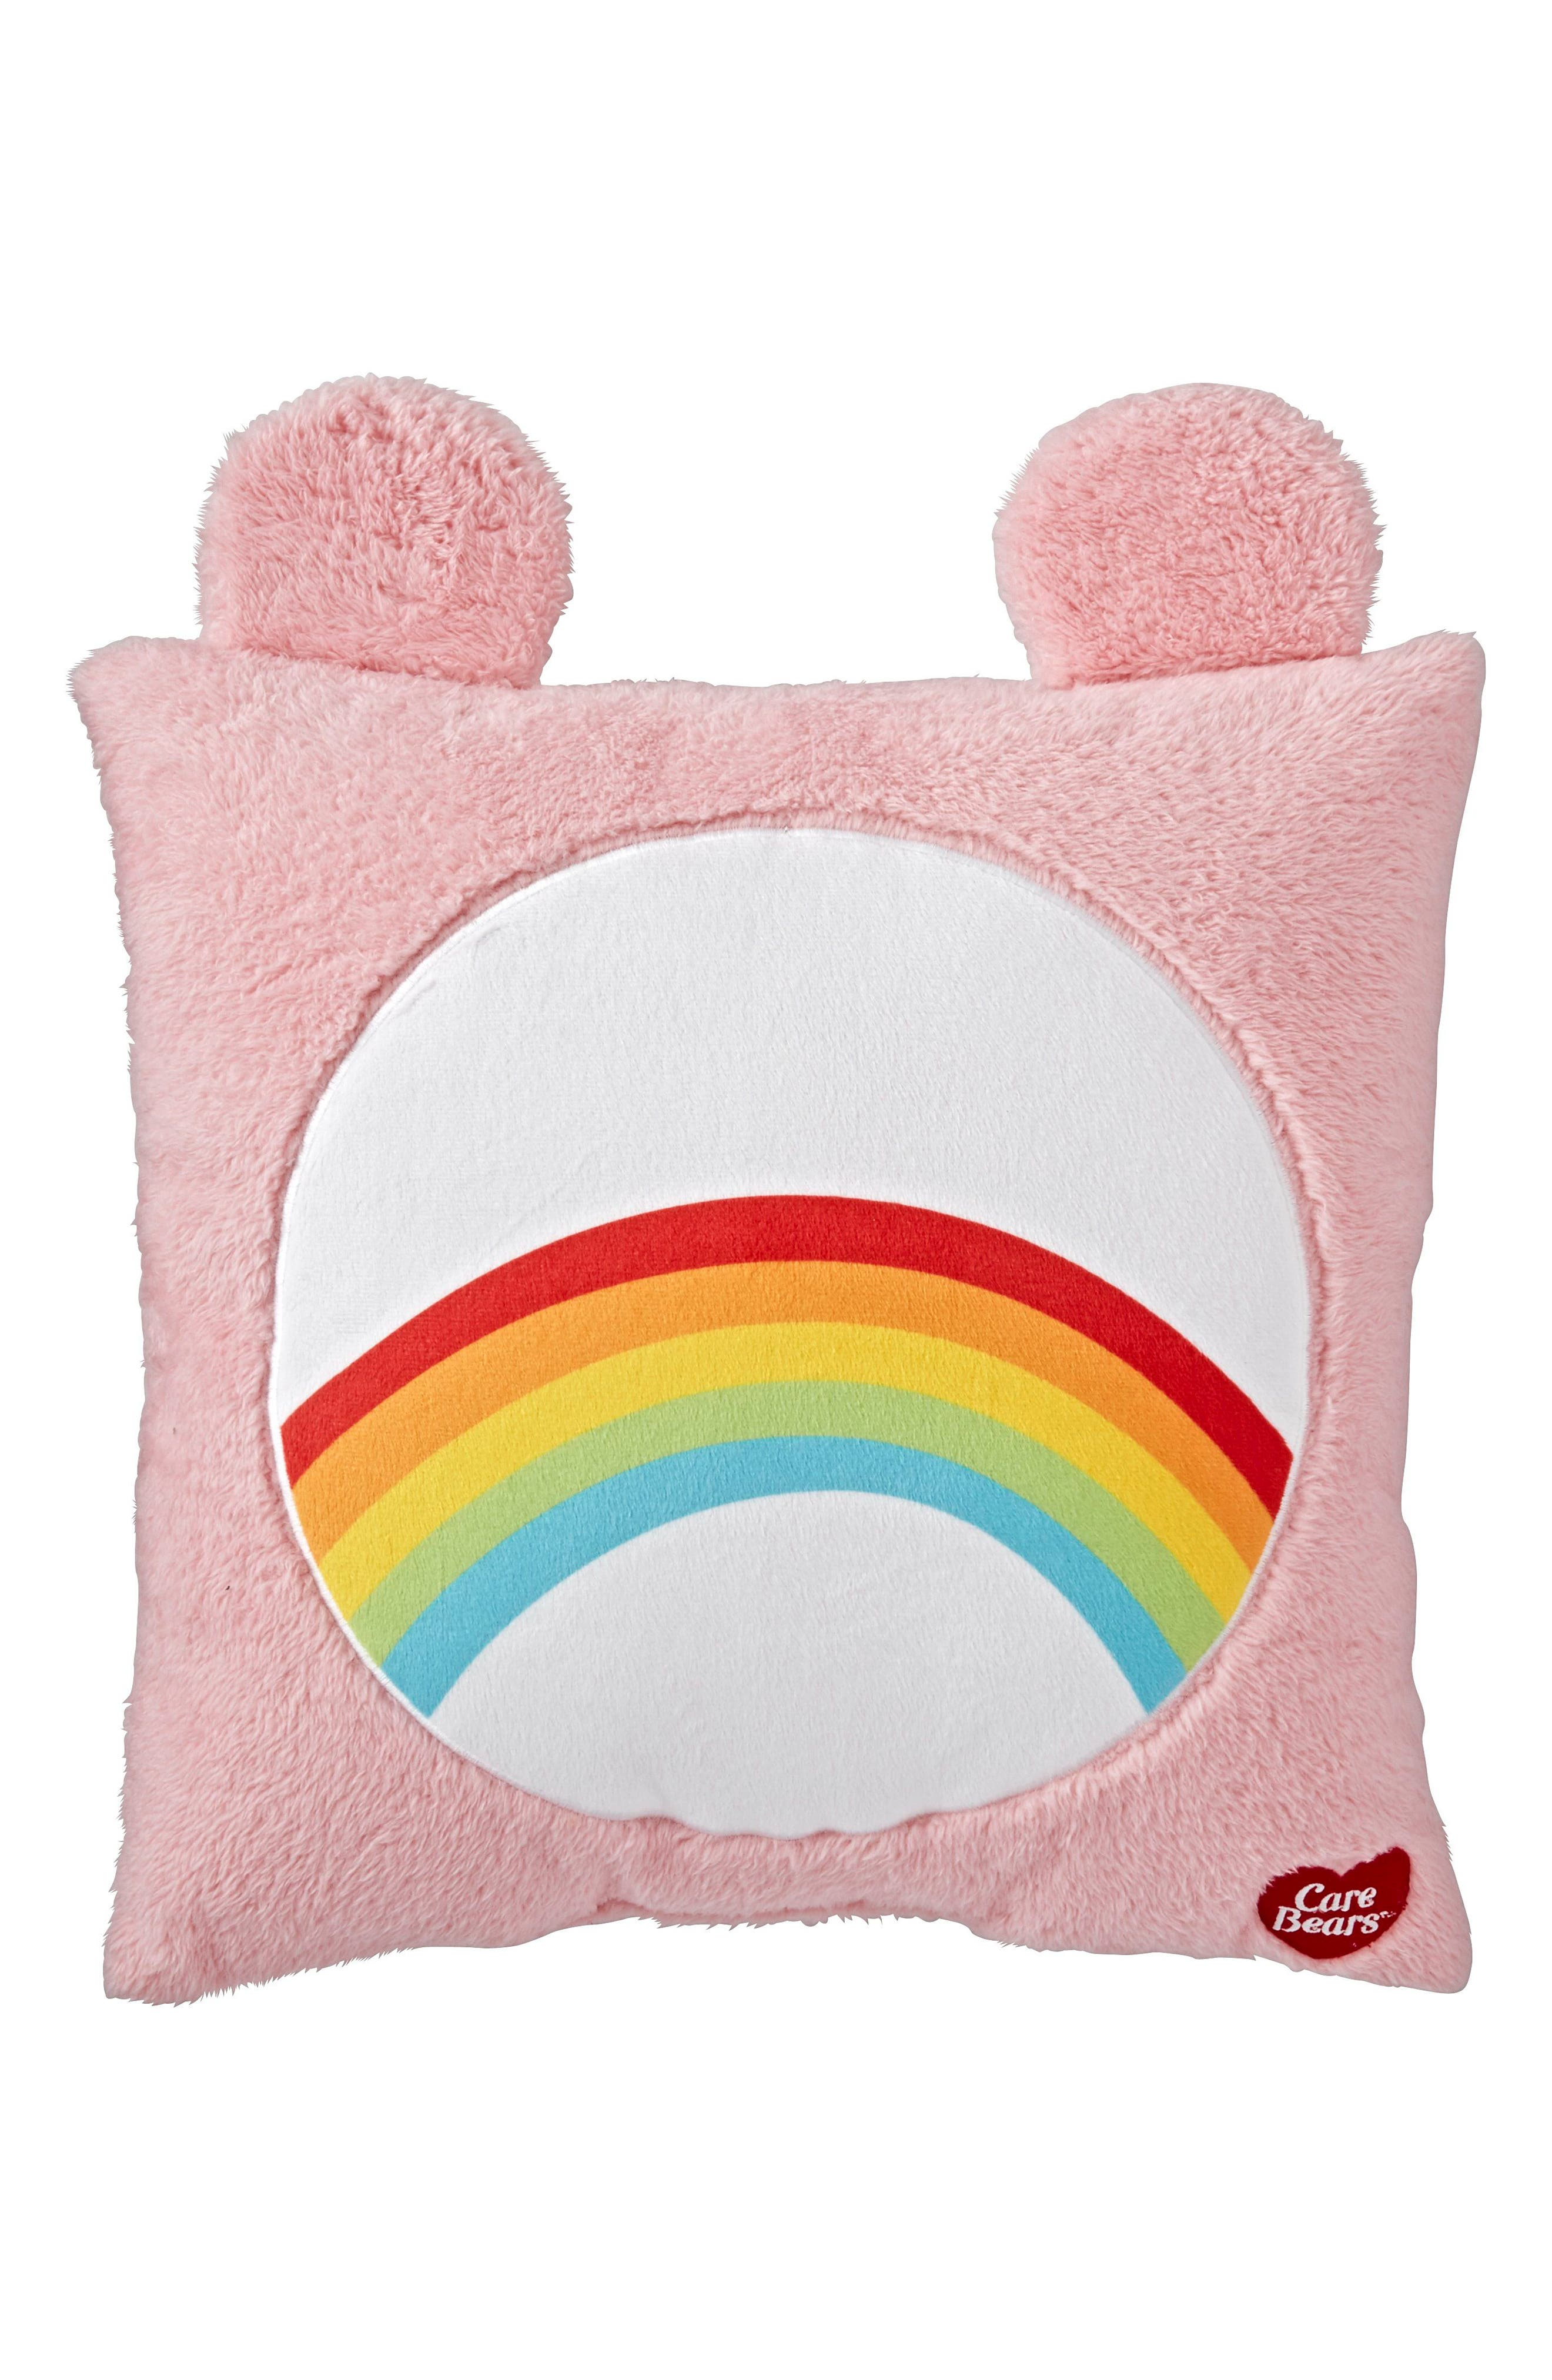 Alternate Image 2  - The Land of Nod Care Bears™ Throw Pillow